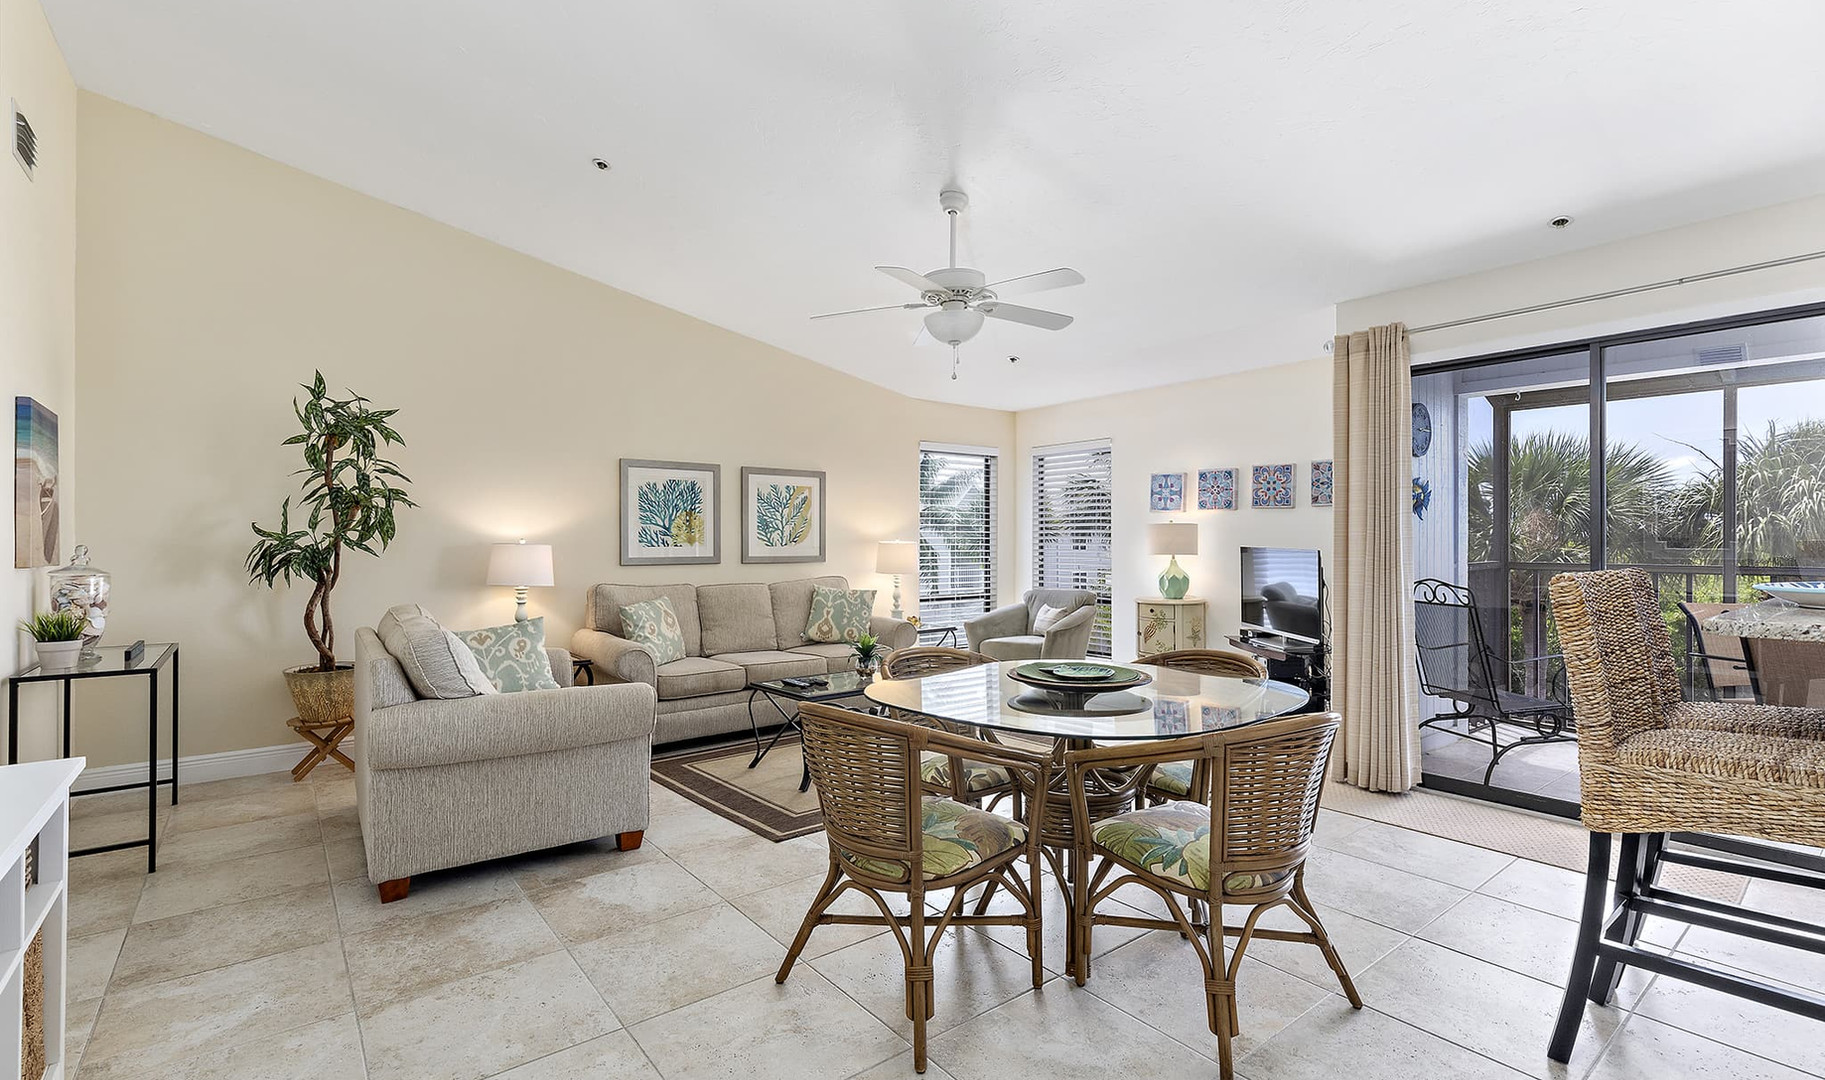 Spacious living and dining area with tab